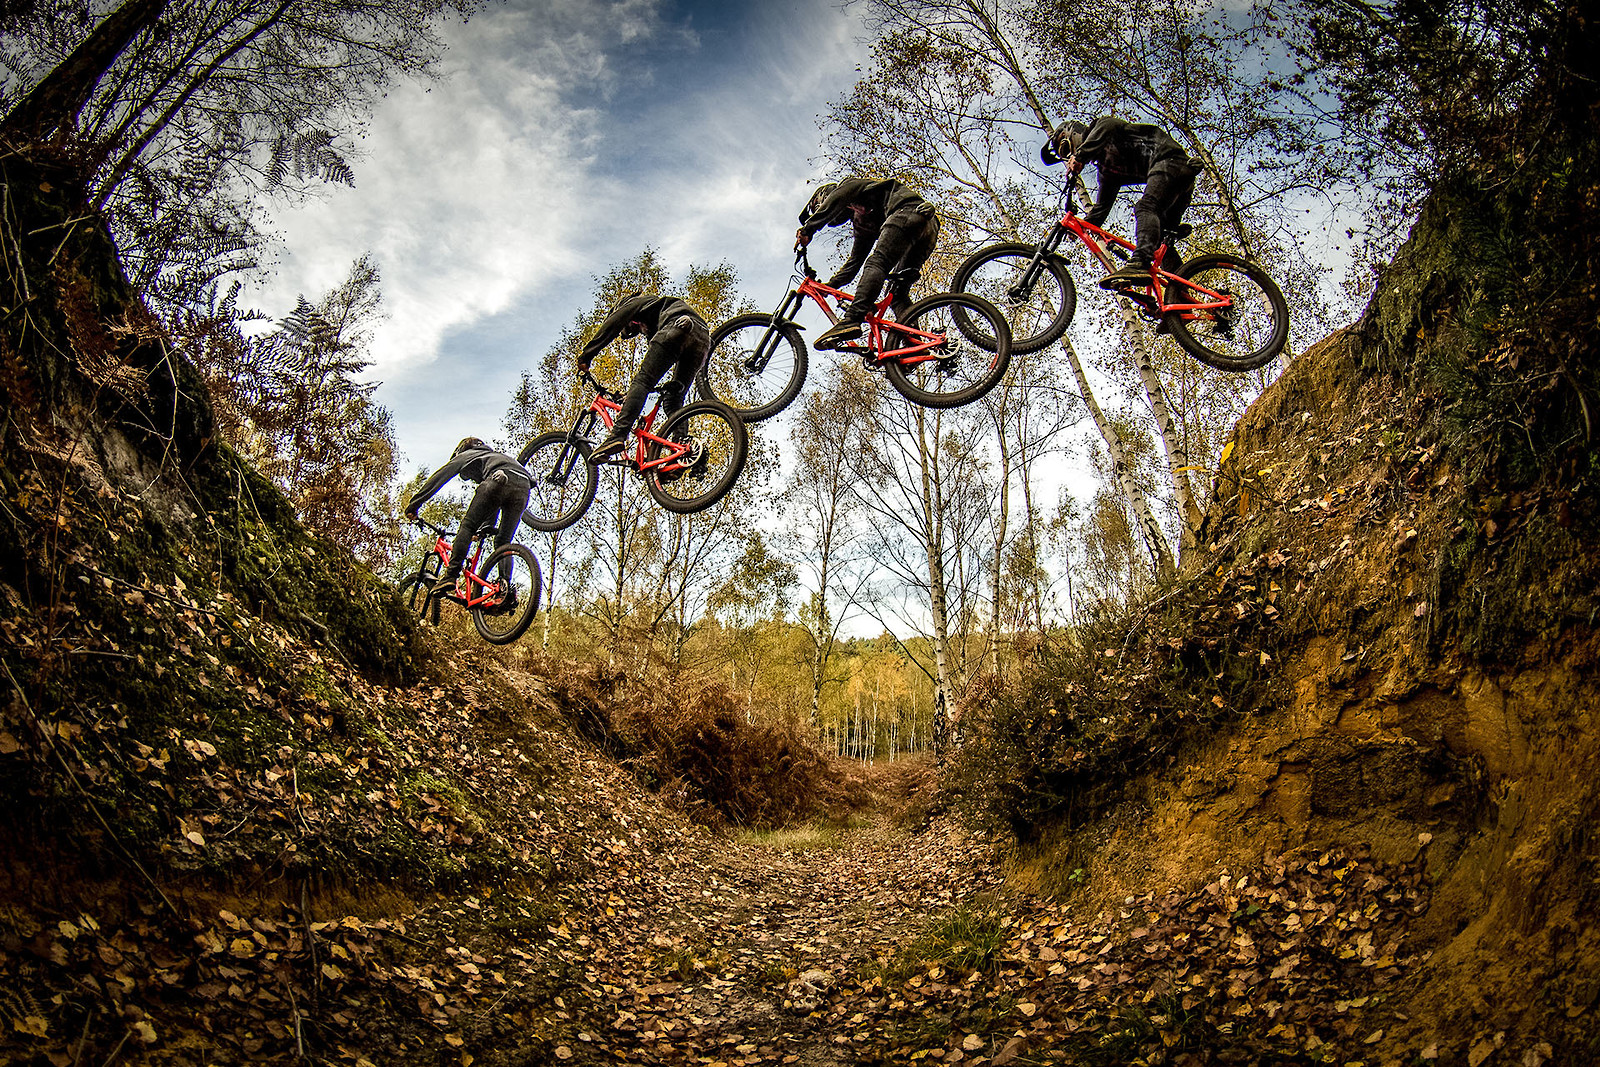 Gully gapping selfie sequence - cagreenwood - Mountain Biking Pictures - Vital MTB